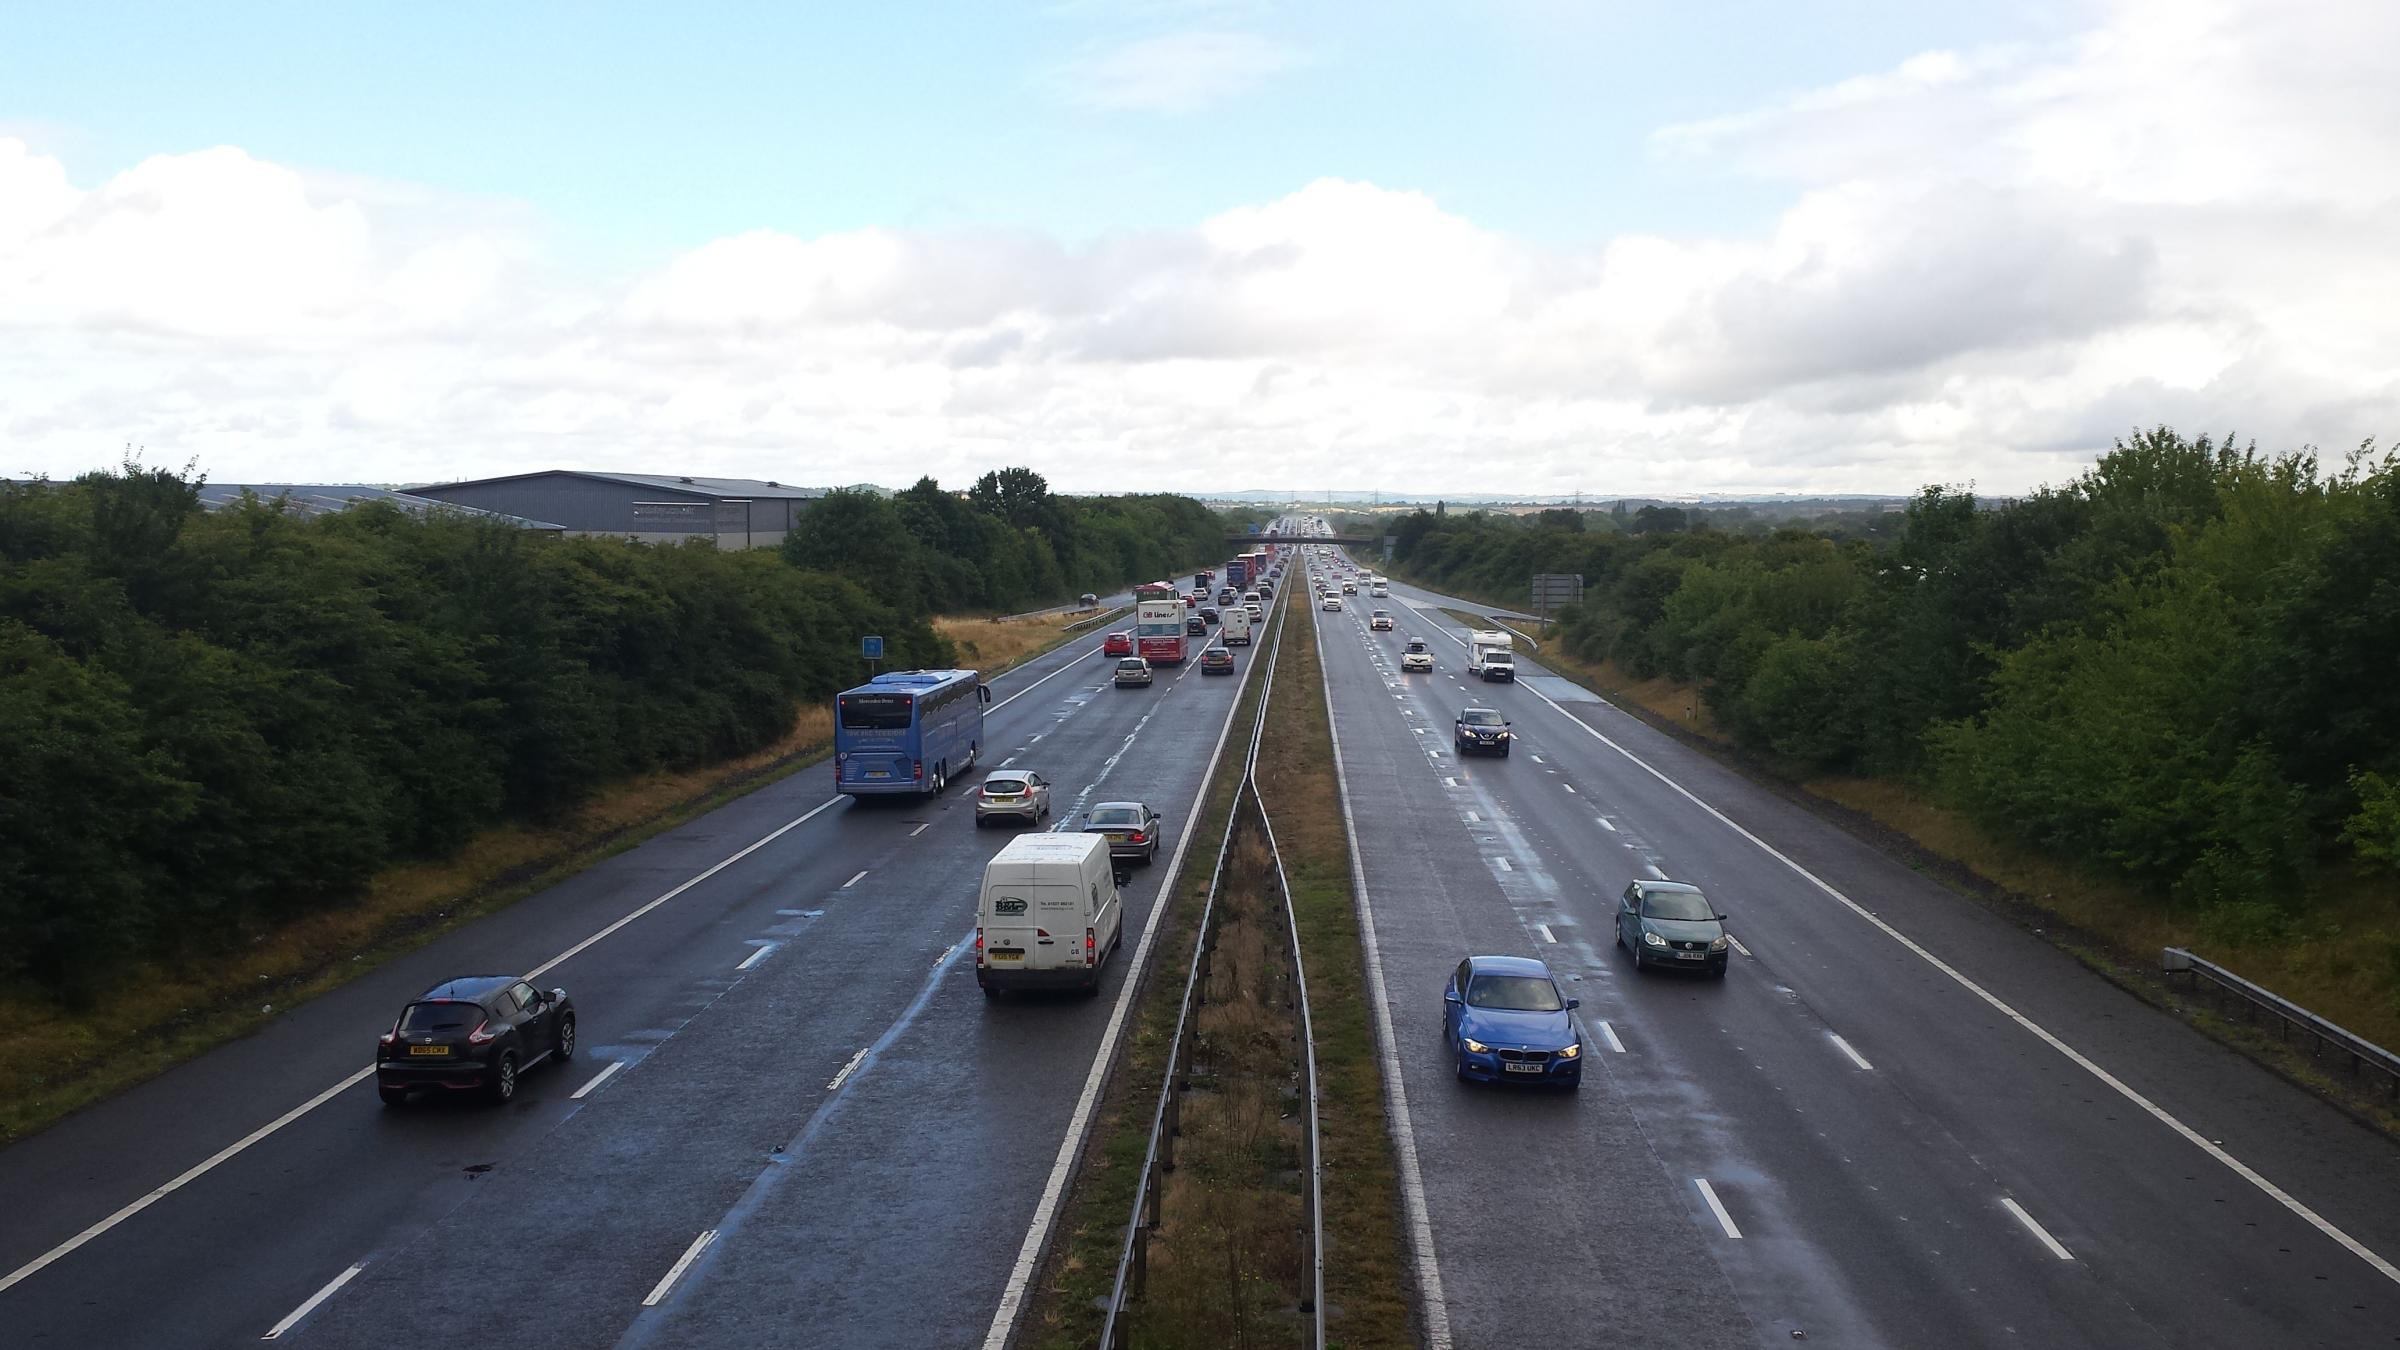 ROADWORKS: Somerset commuters face two years of roadworks next spring as work begins to upgrade the M5